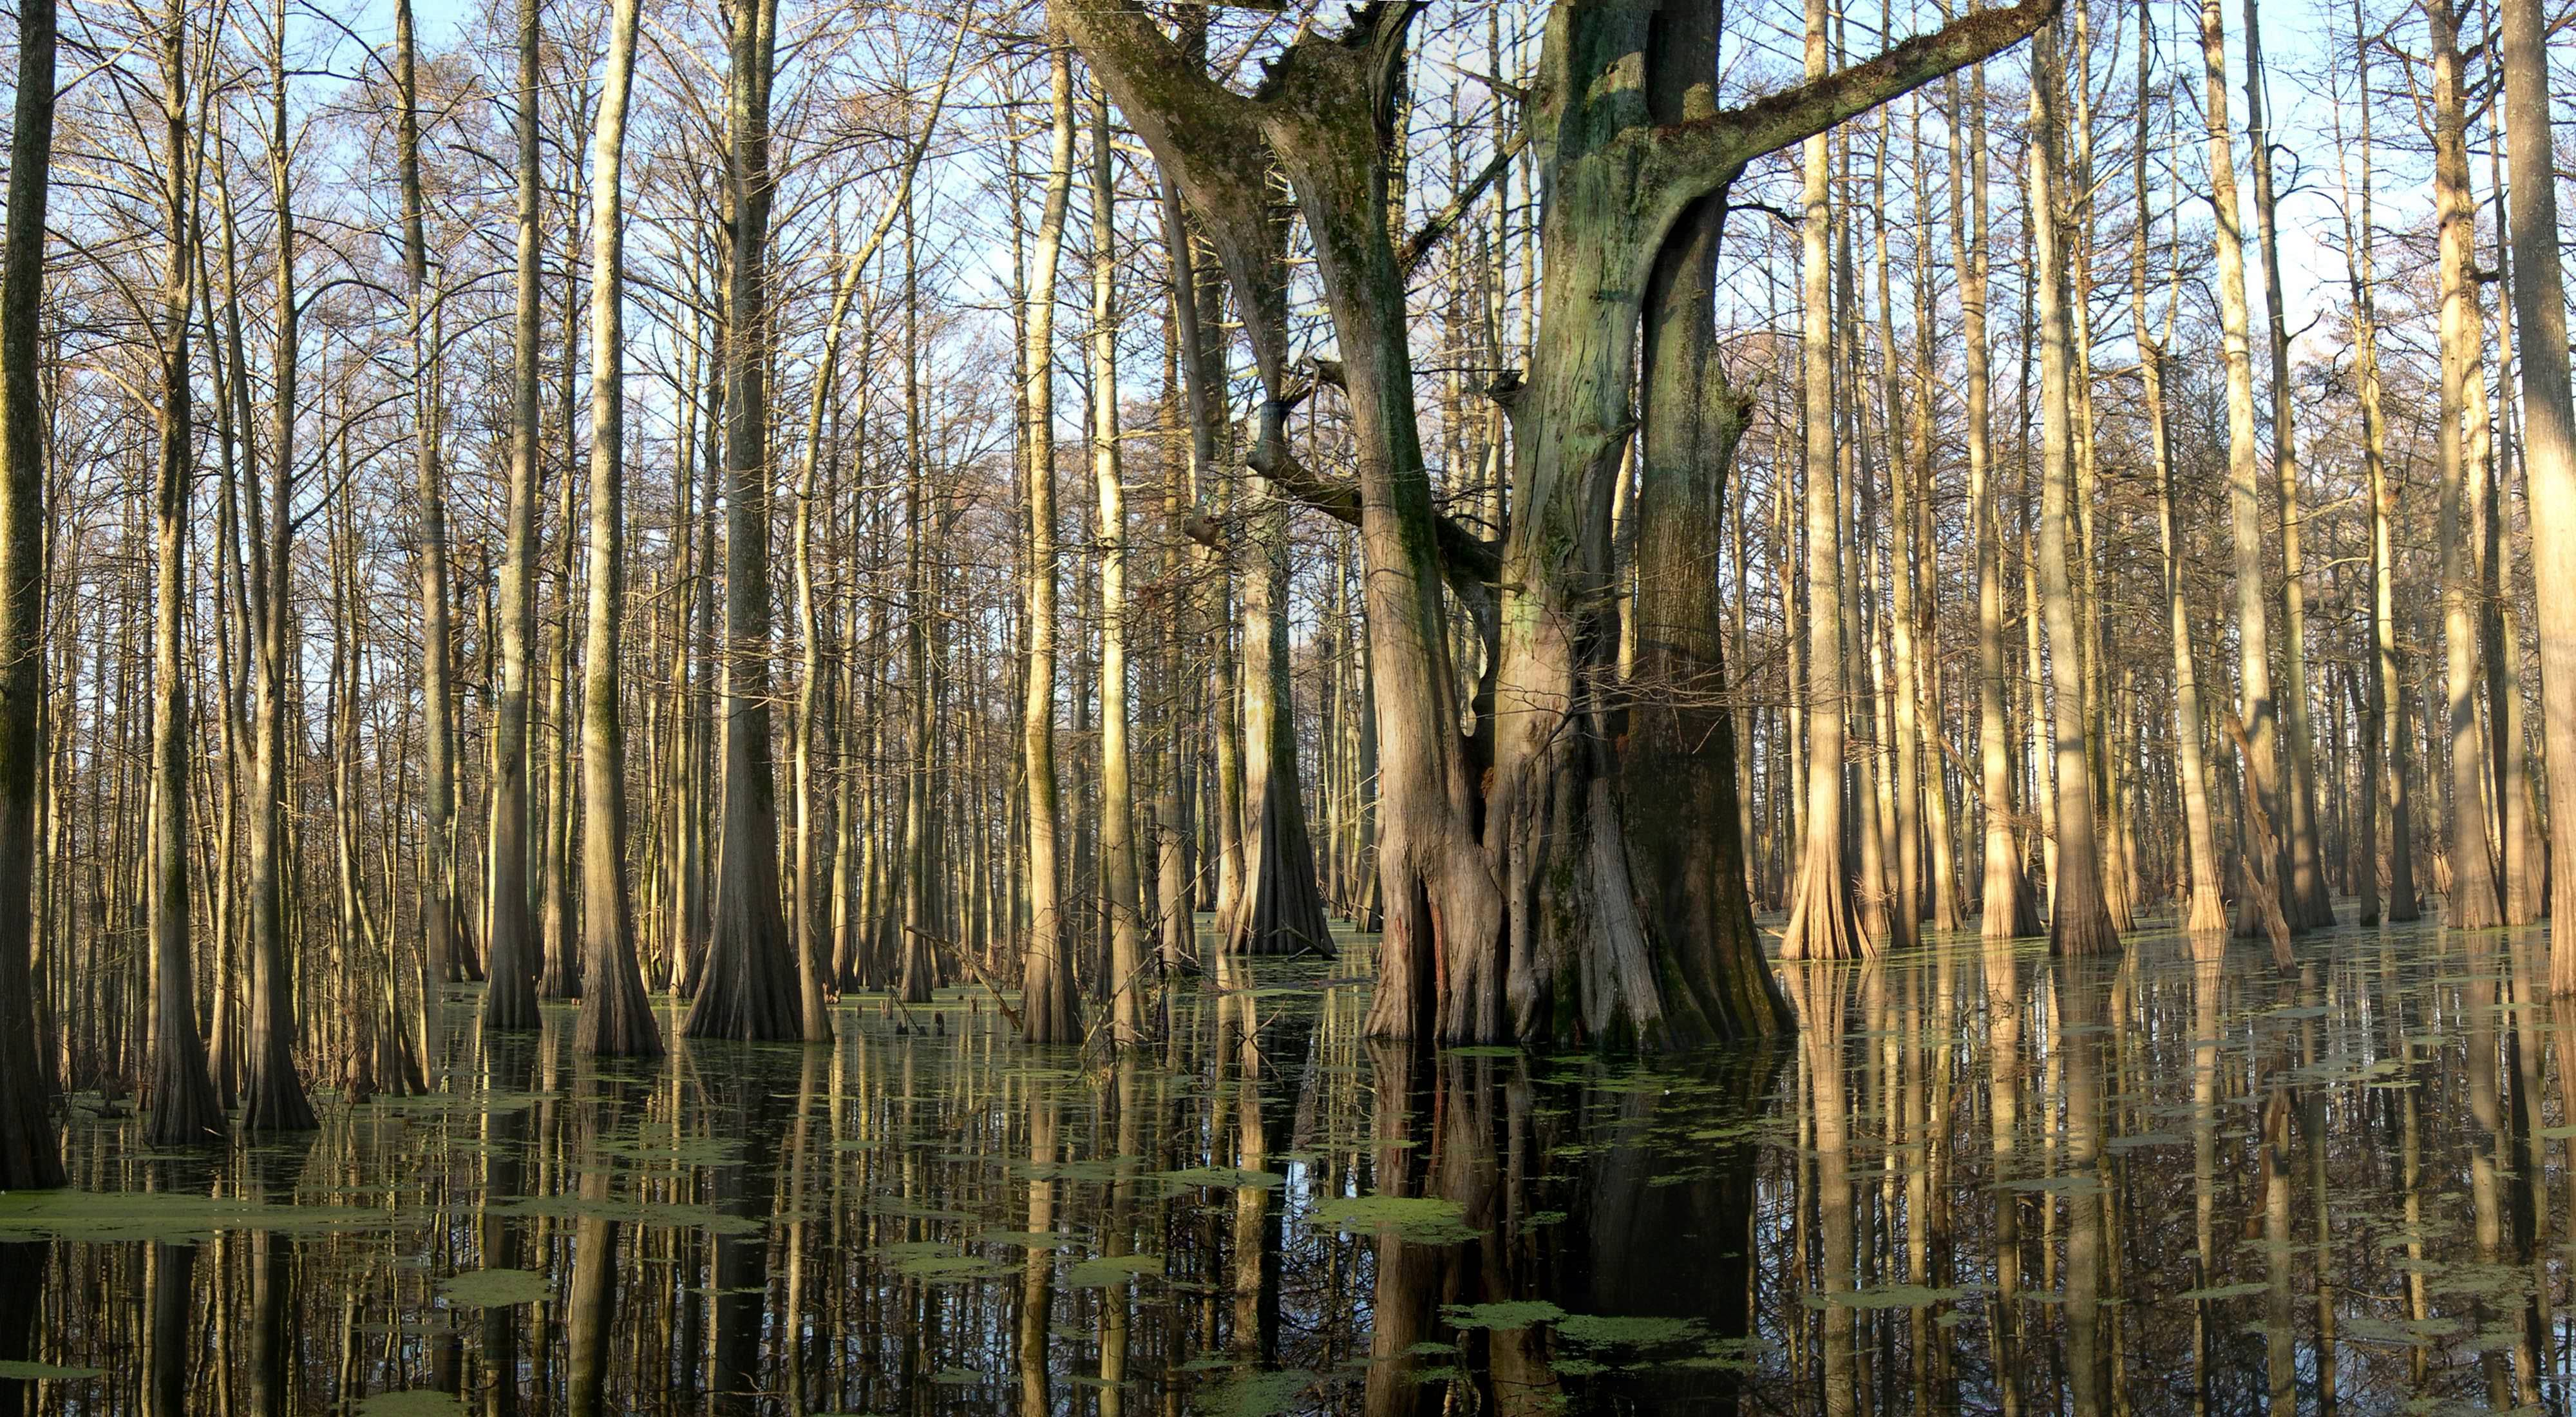 A swampy landscape with tree trunks growing out of water with some floating patches of algae or aquatic plants.